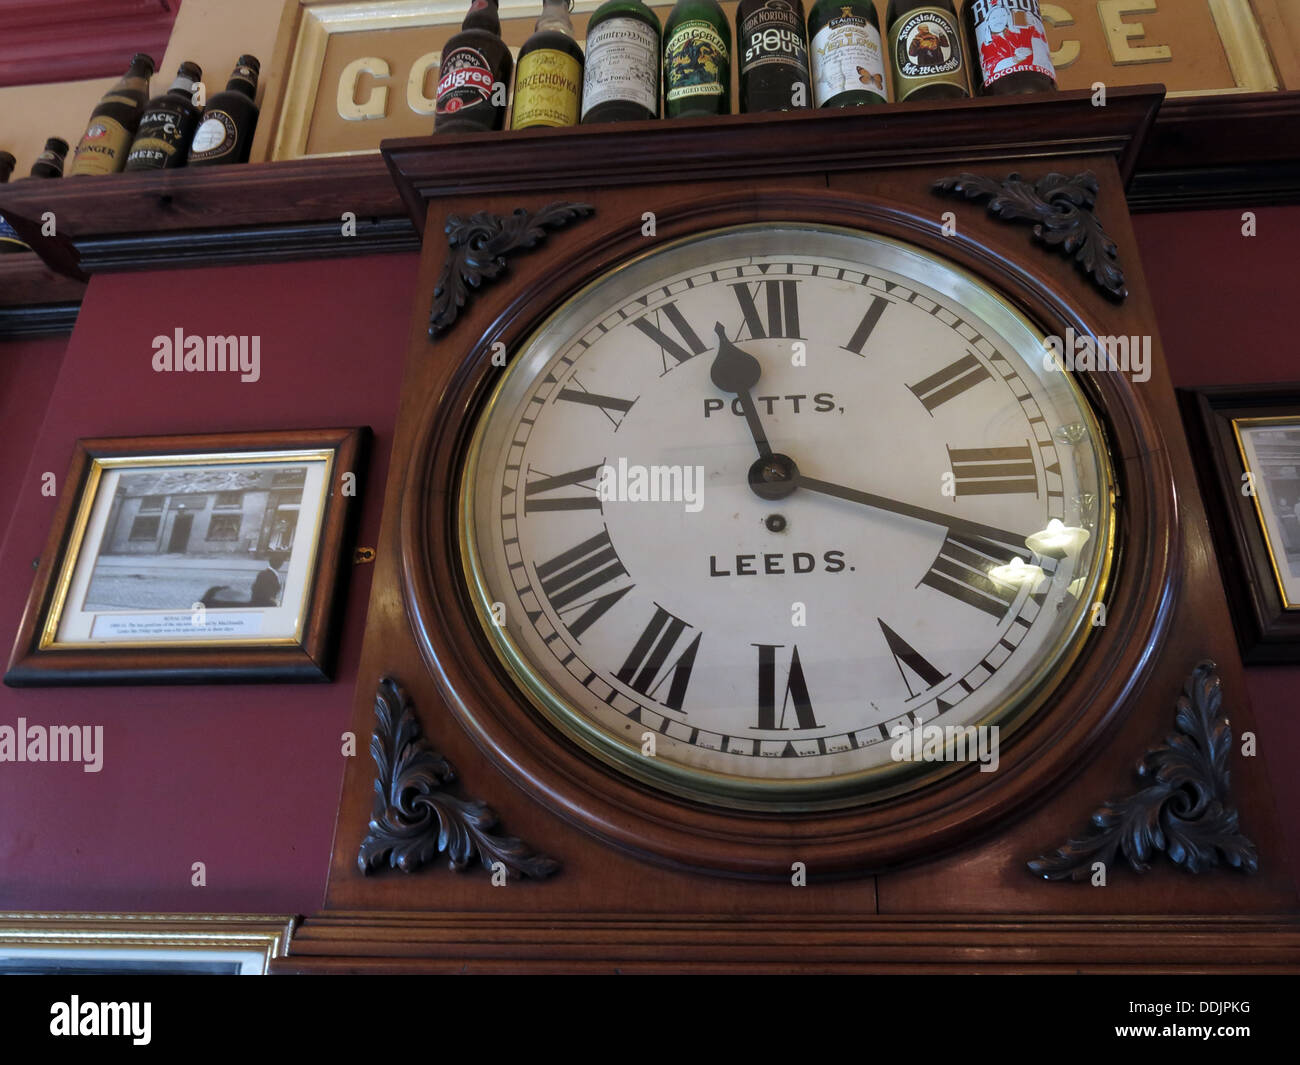 Potts Leeds clock at Dewsbury West Riding pub refreshment rooms, West Yorks, England, UK - Stock Image